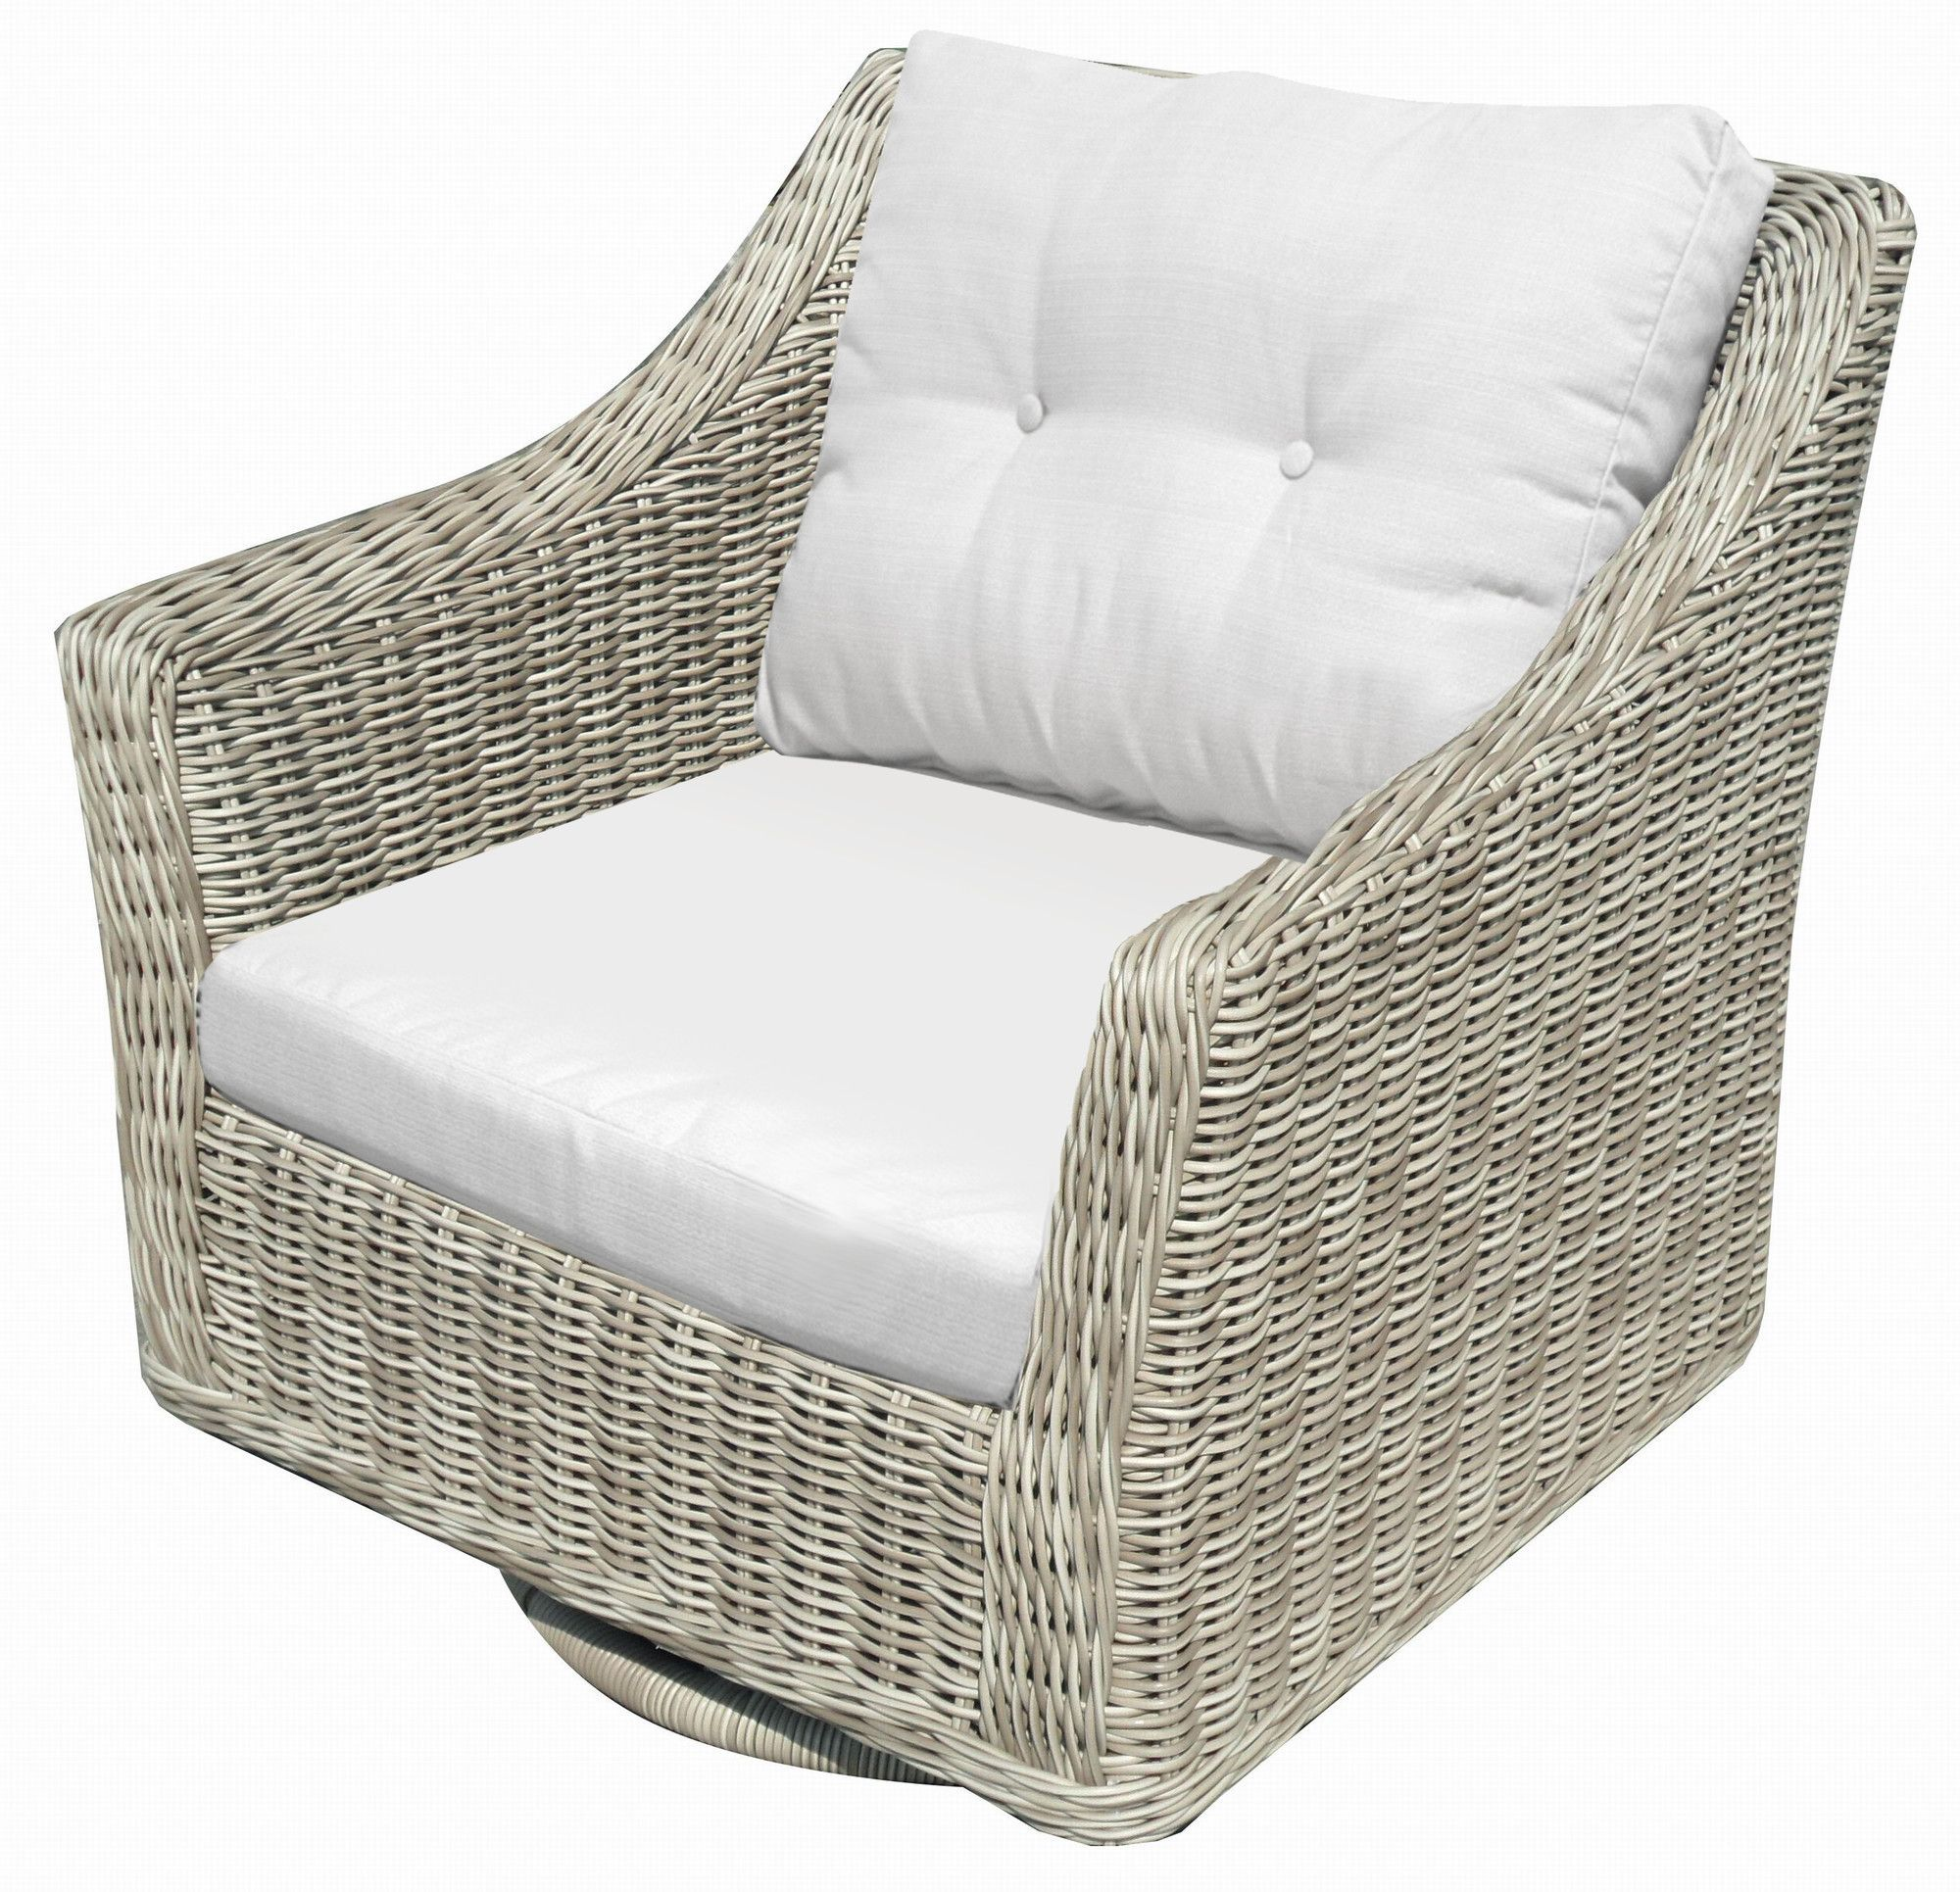 Lassiter Swivel Rocking Chair With Cushions Wayfair Outdoor Wicker Chairs Patio Rocking Chairs Swivel Glider Chair